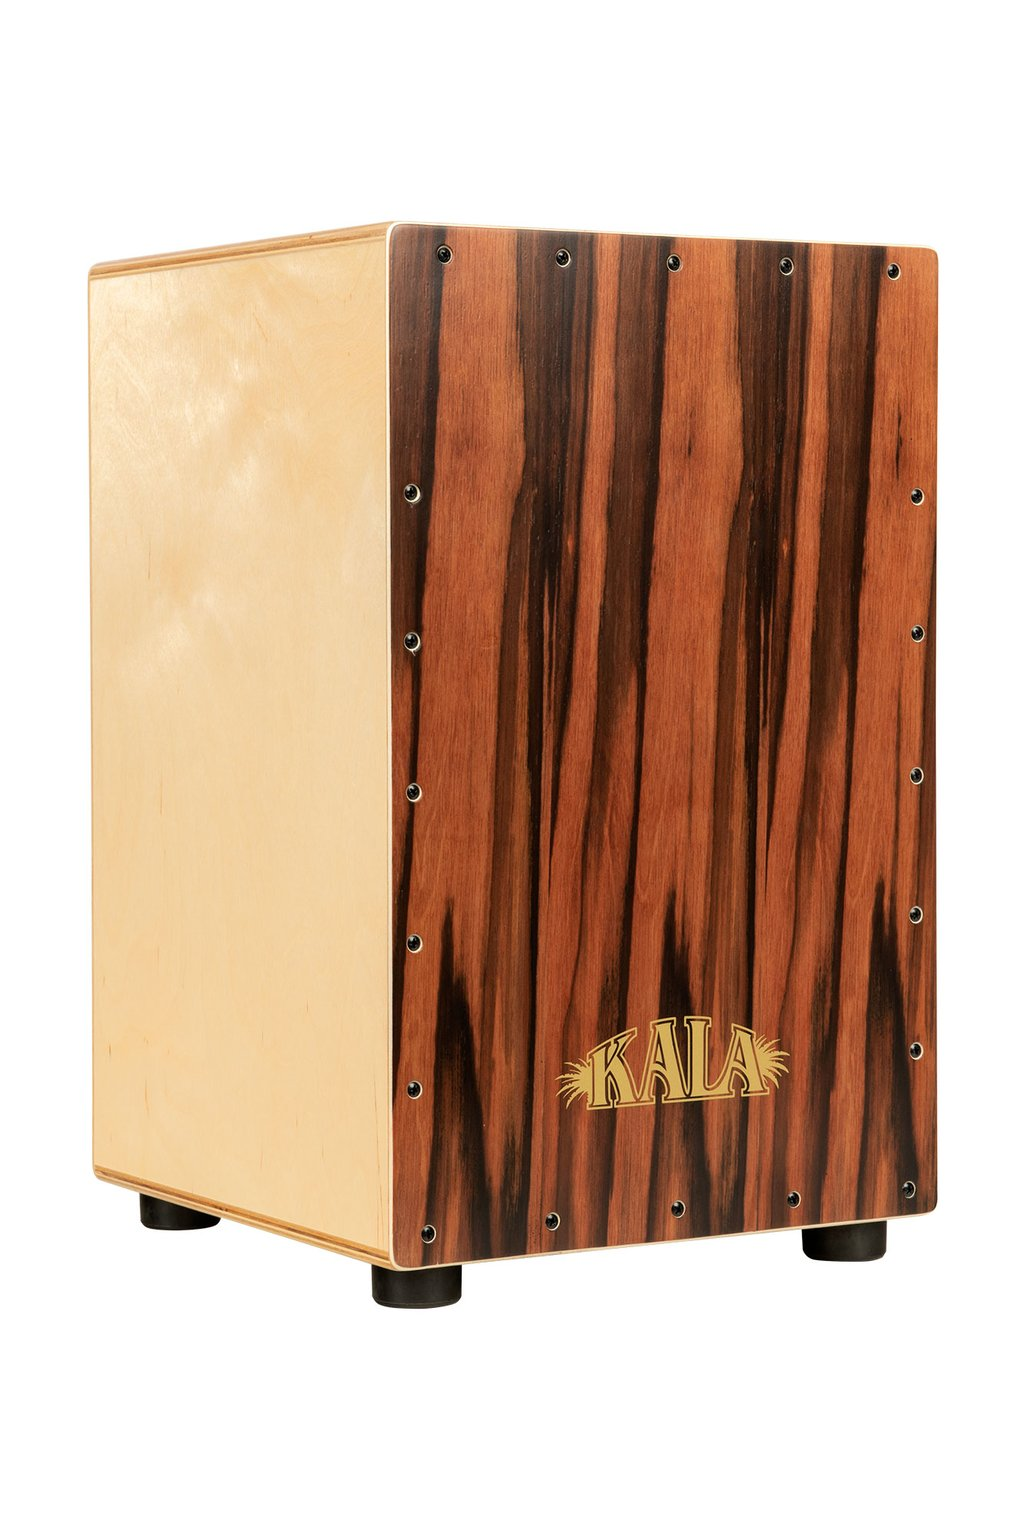 Kala Striped Ebony Cajon